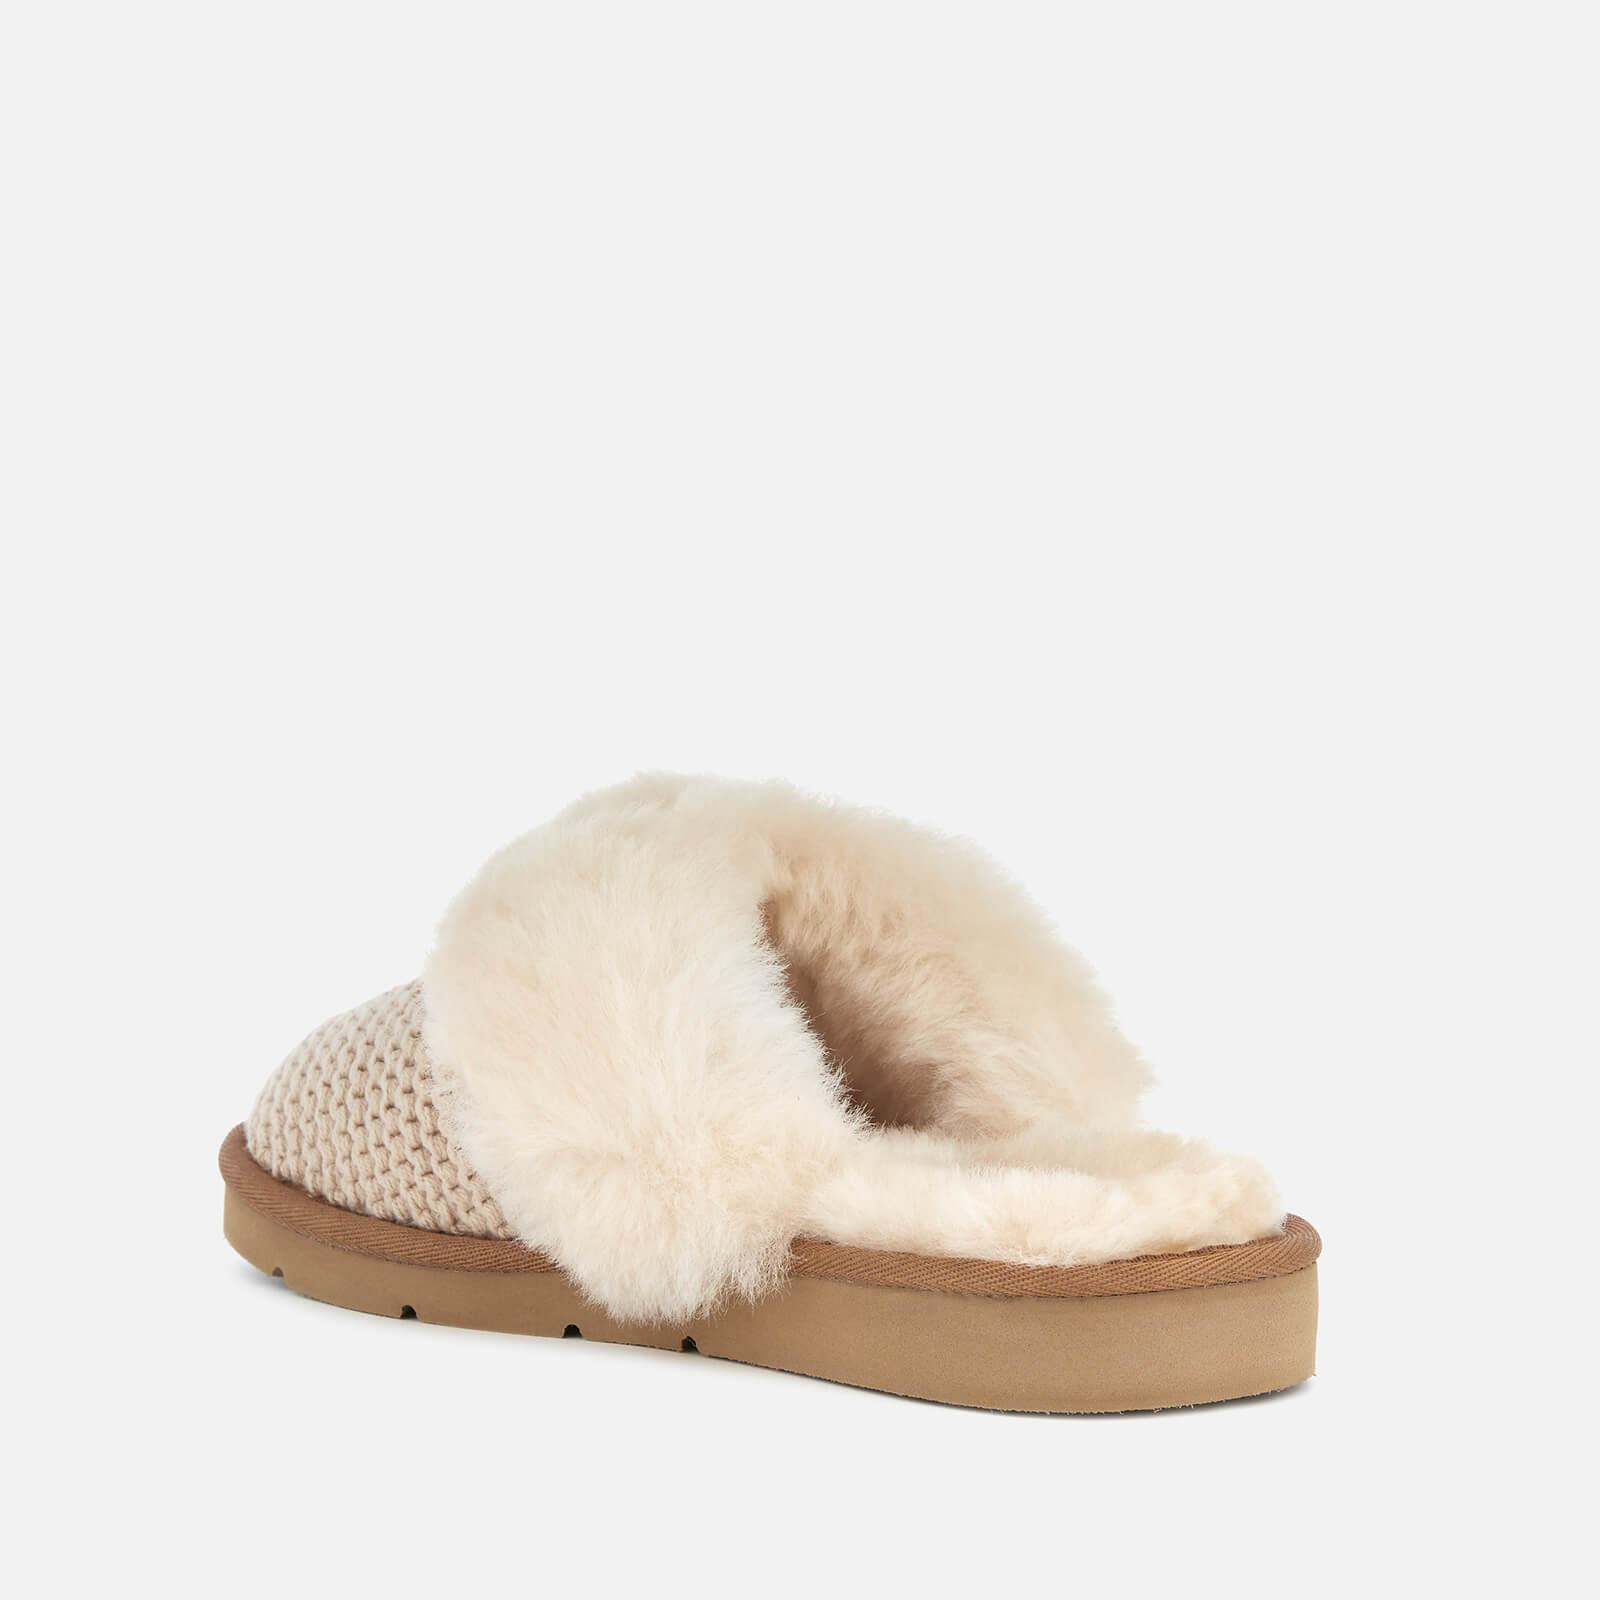 0884cbb51d9 UGG Cozy Knit Slippers in Natural - Lyst